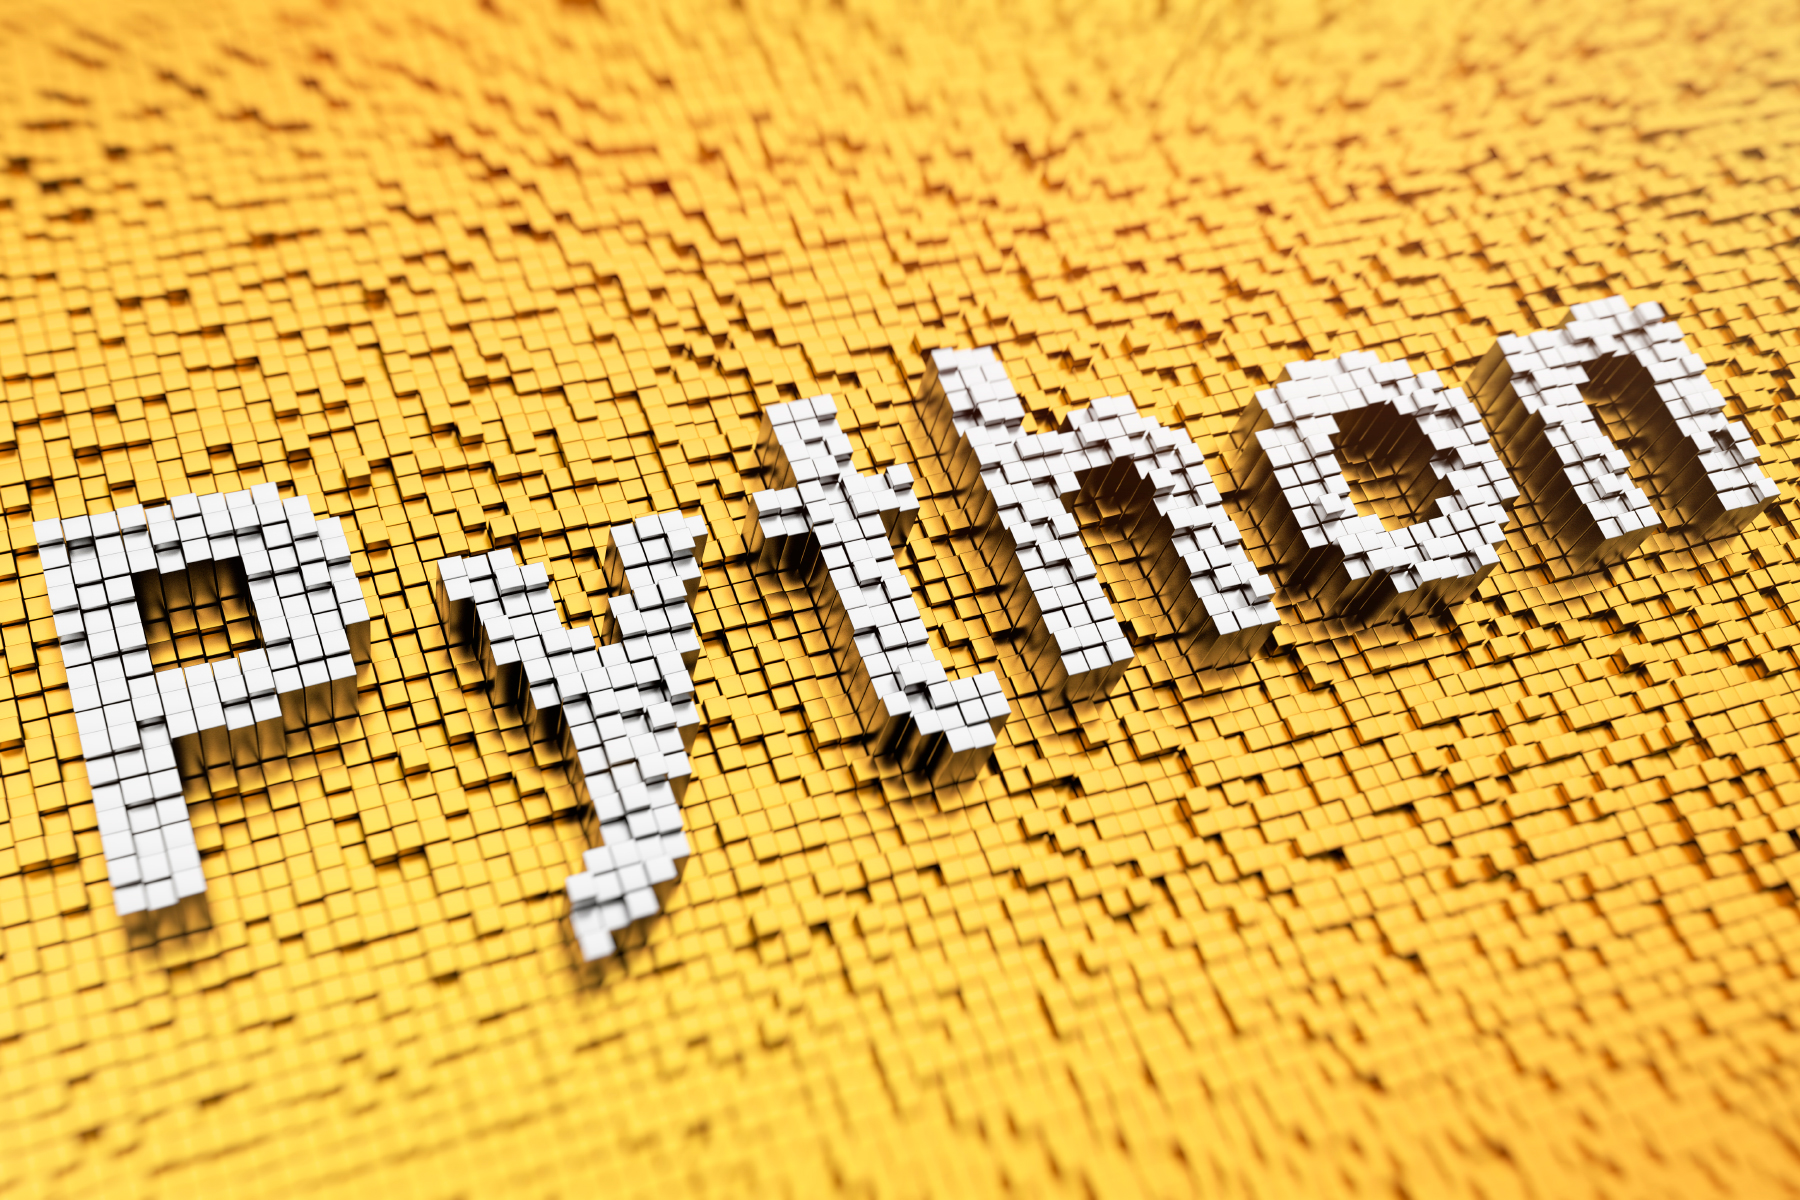 Python for biologists: the code of bioinformatics